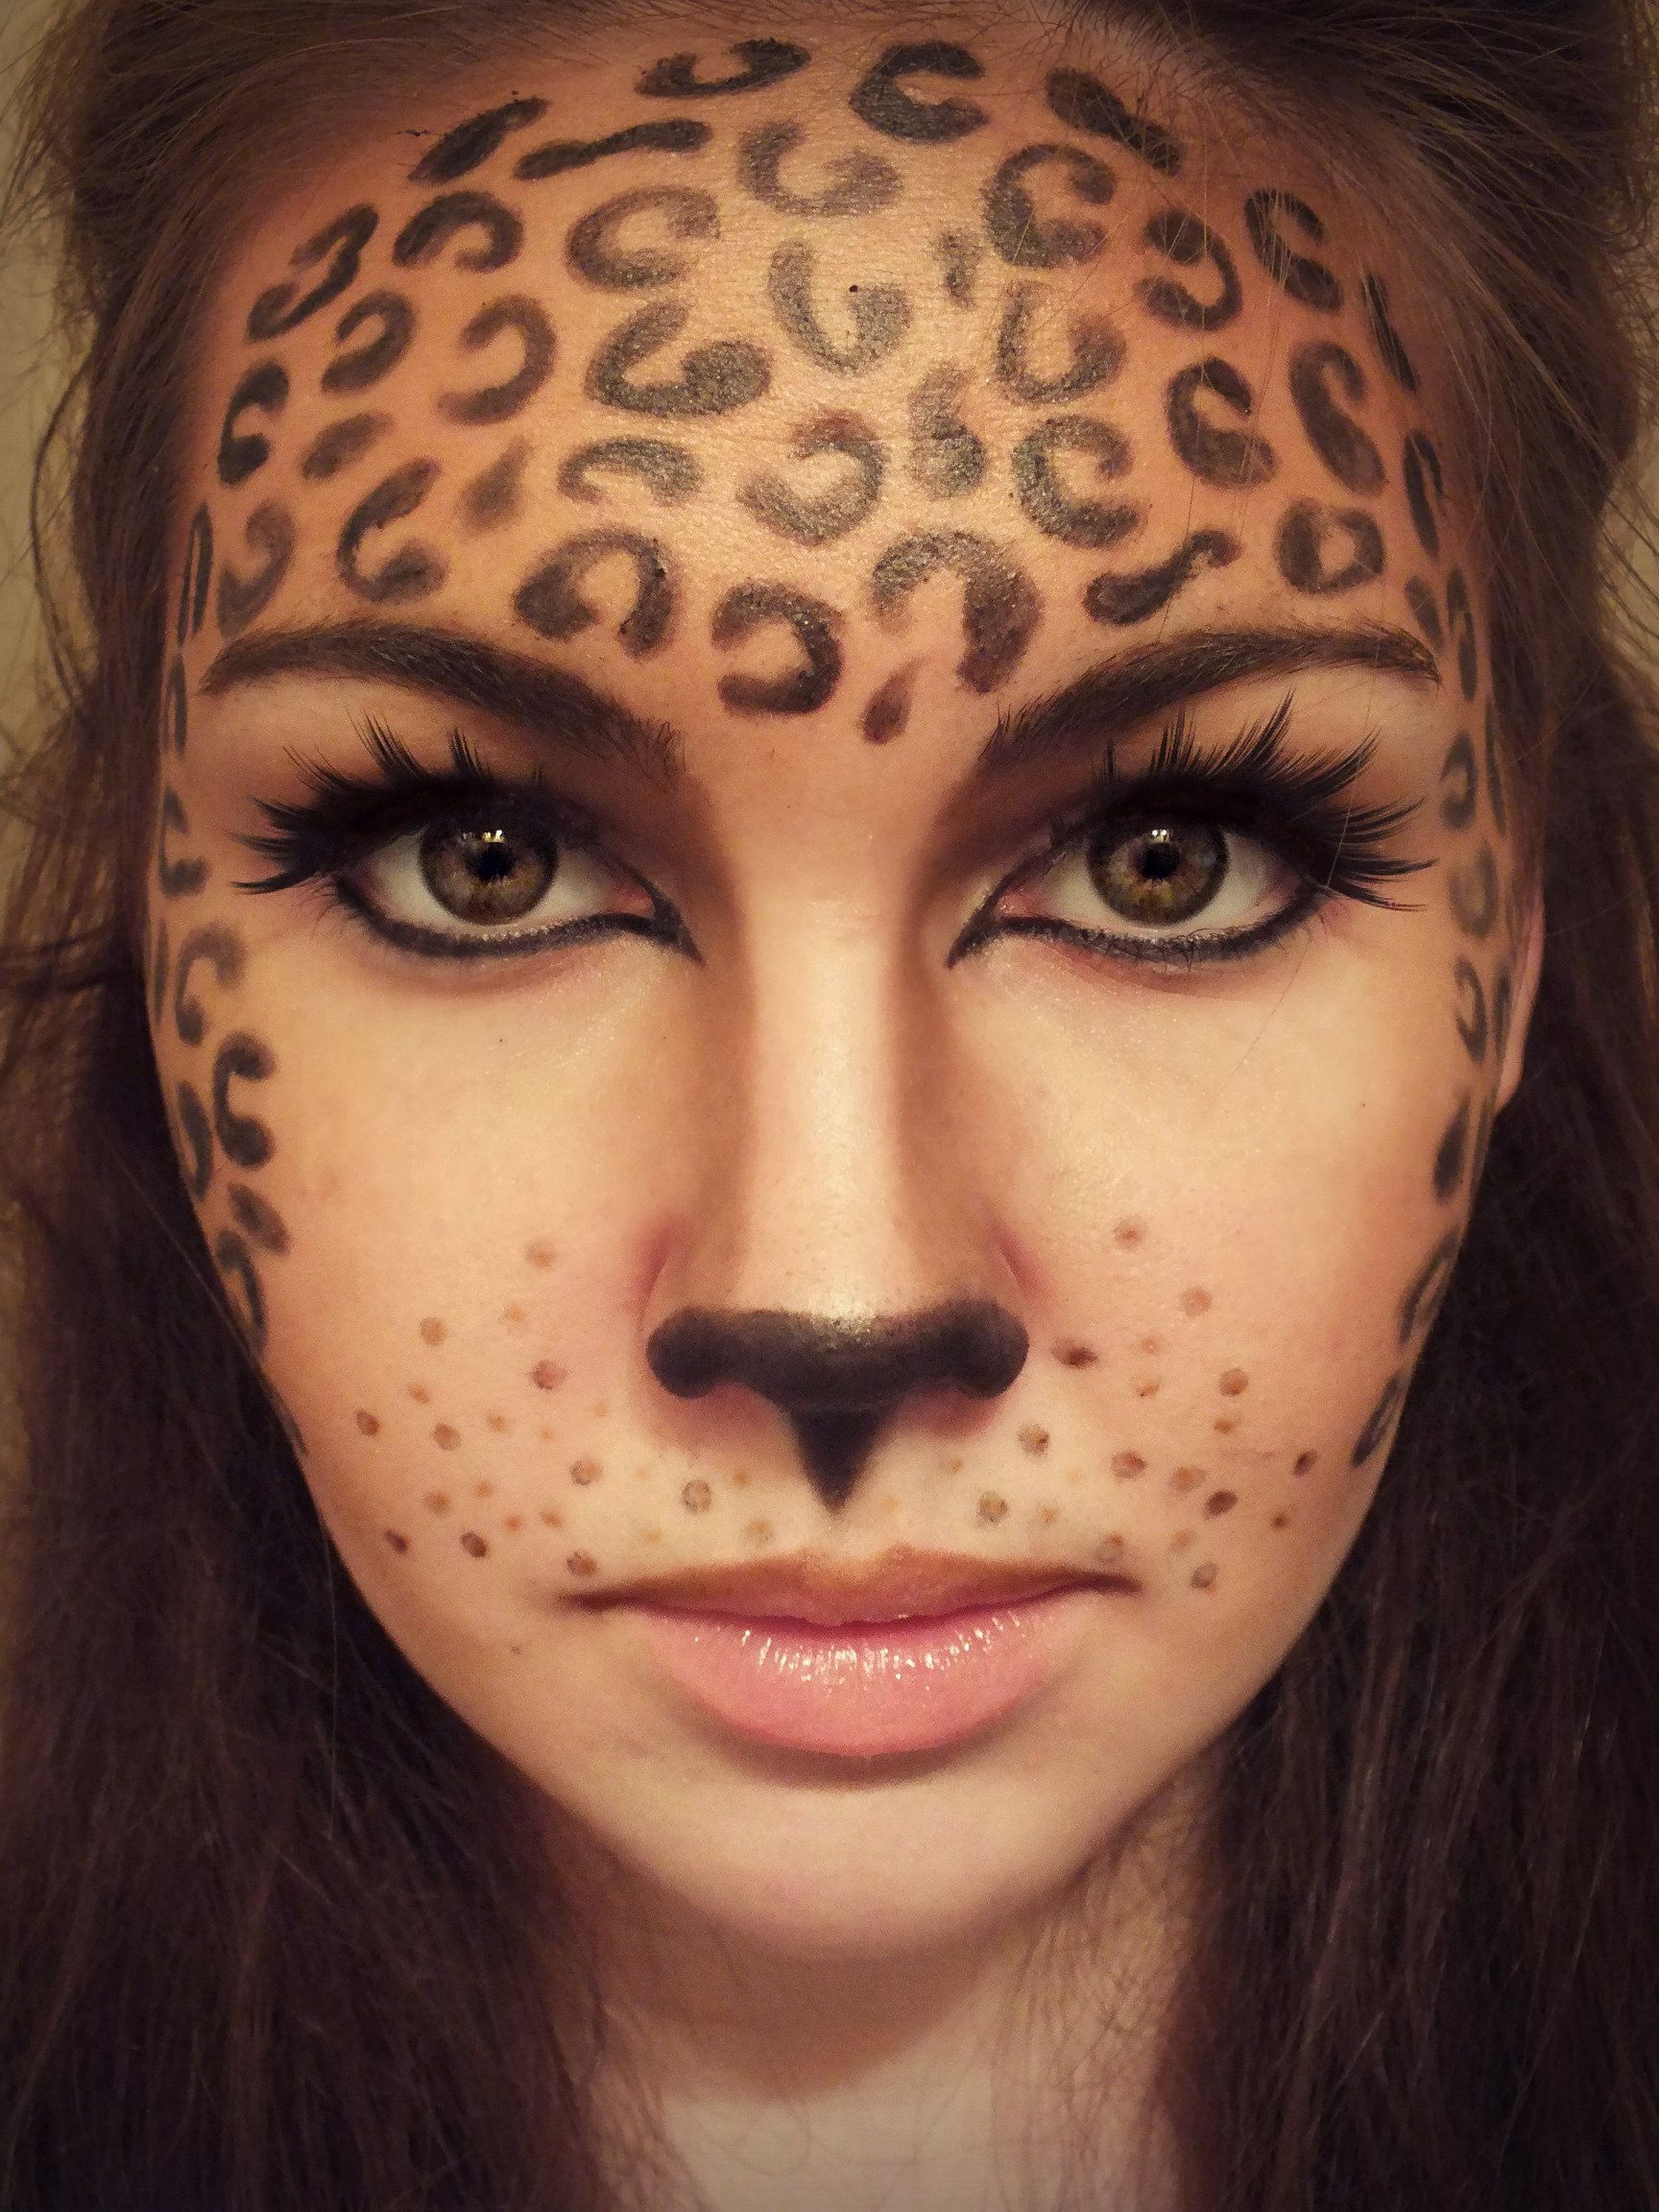 Leopard makeup for Halloween My Obsessions( Halloween